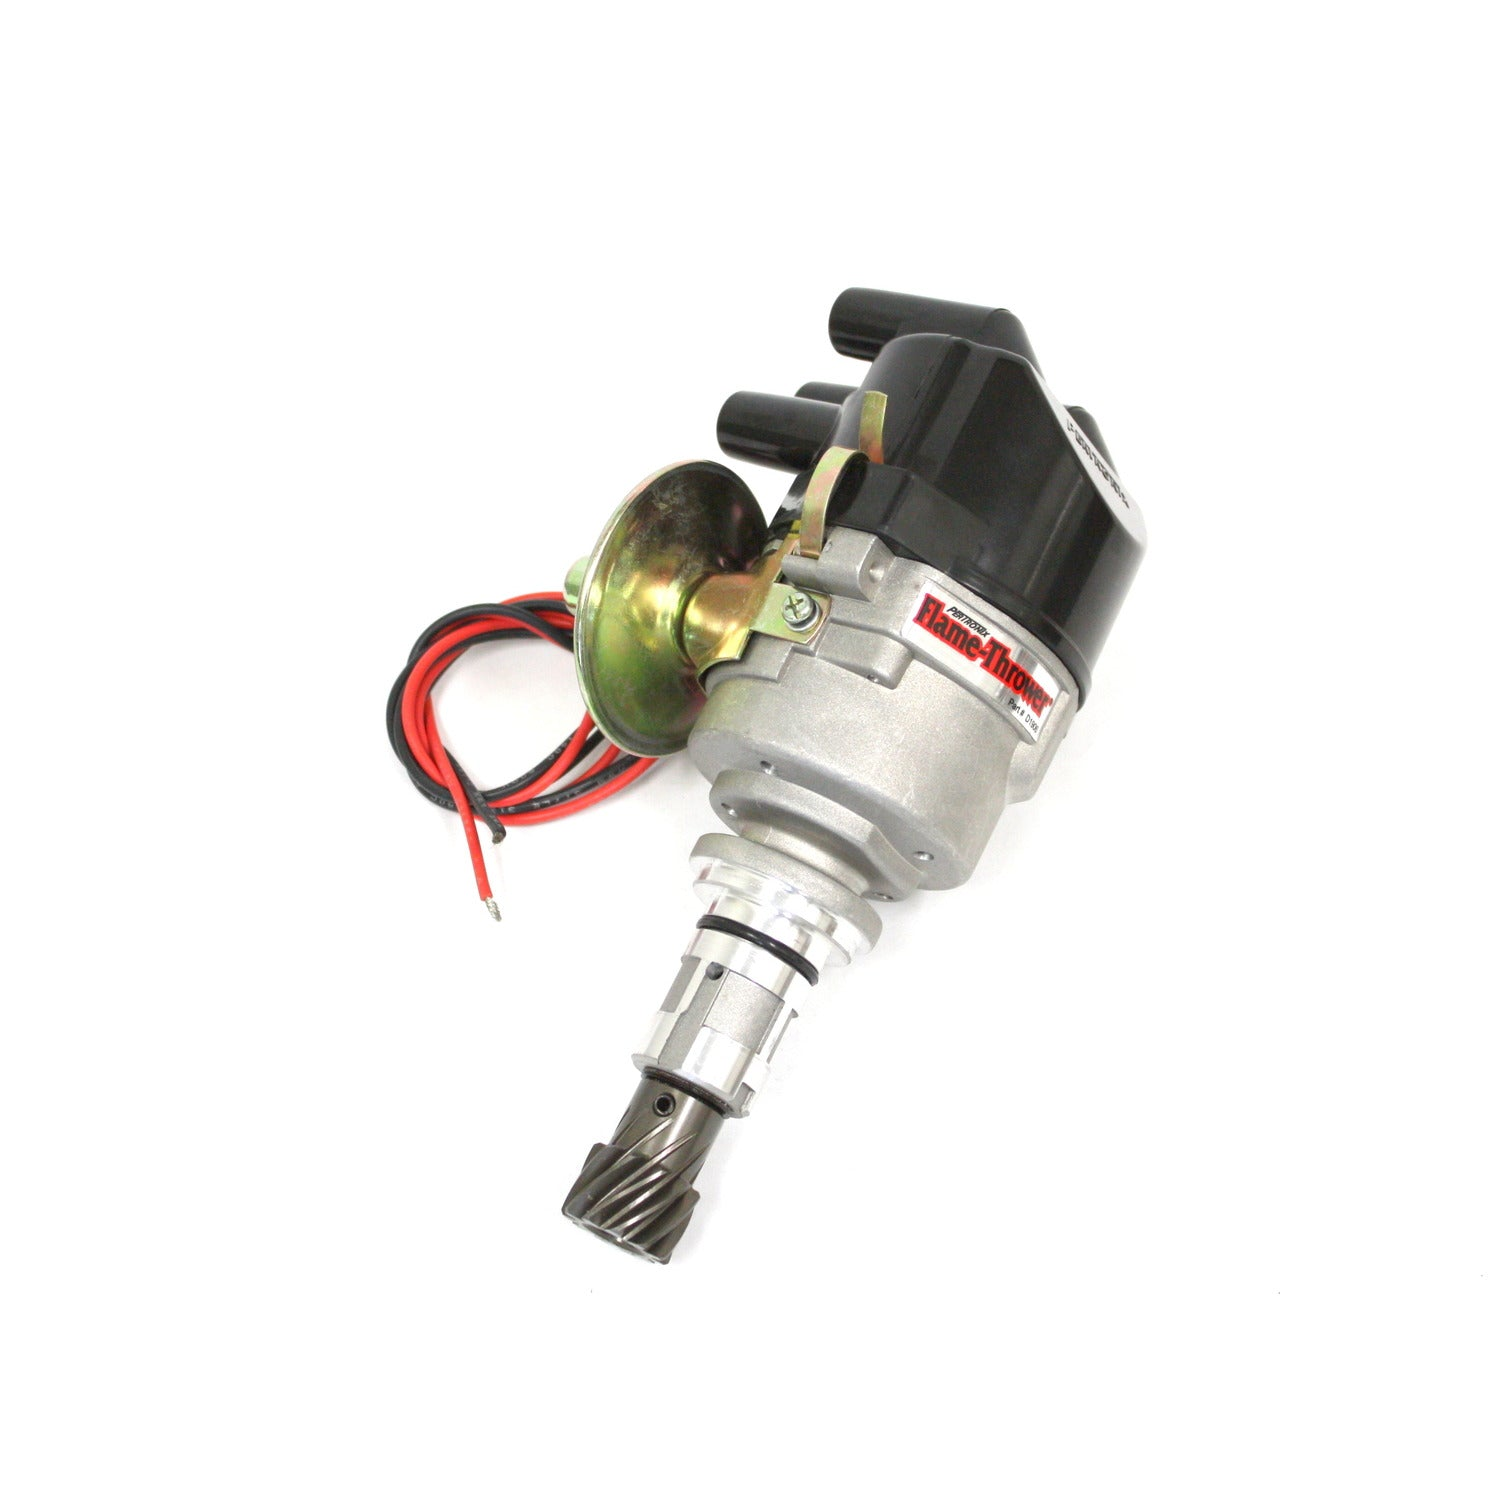 PerTronix D196609 Flame-Thrower Electronic Distributor Cast Ford X-Flow 4 cyl Plug and Play with Ignitor Vacuum Advance Side Cap